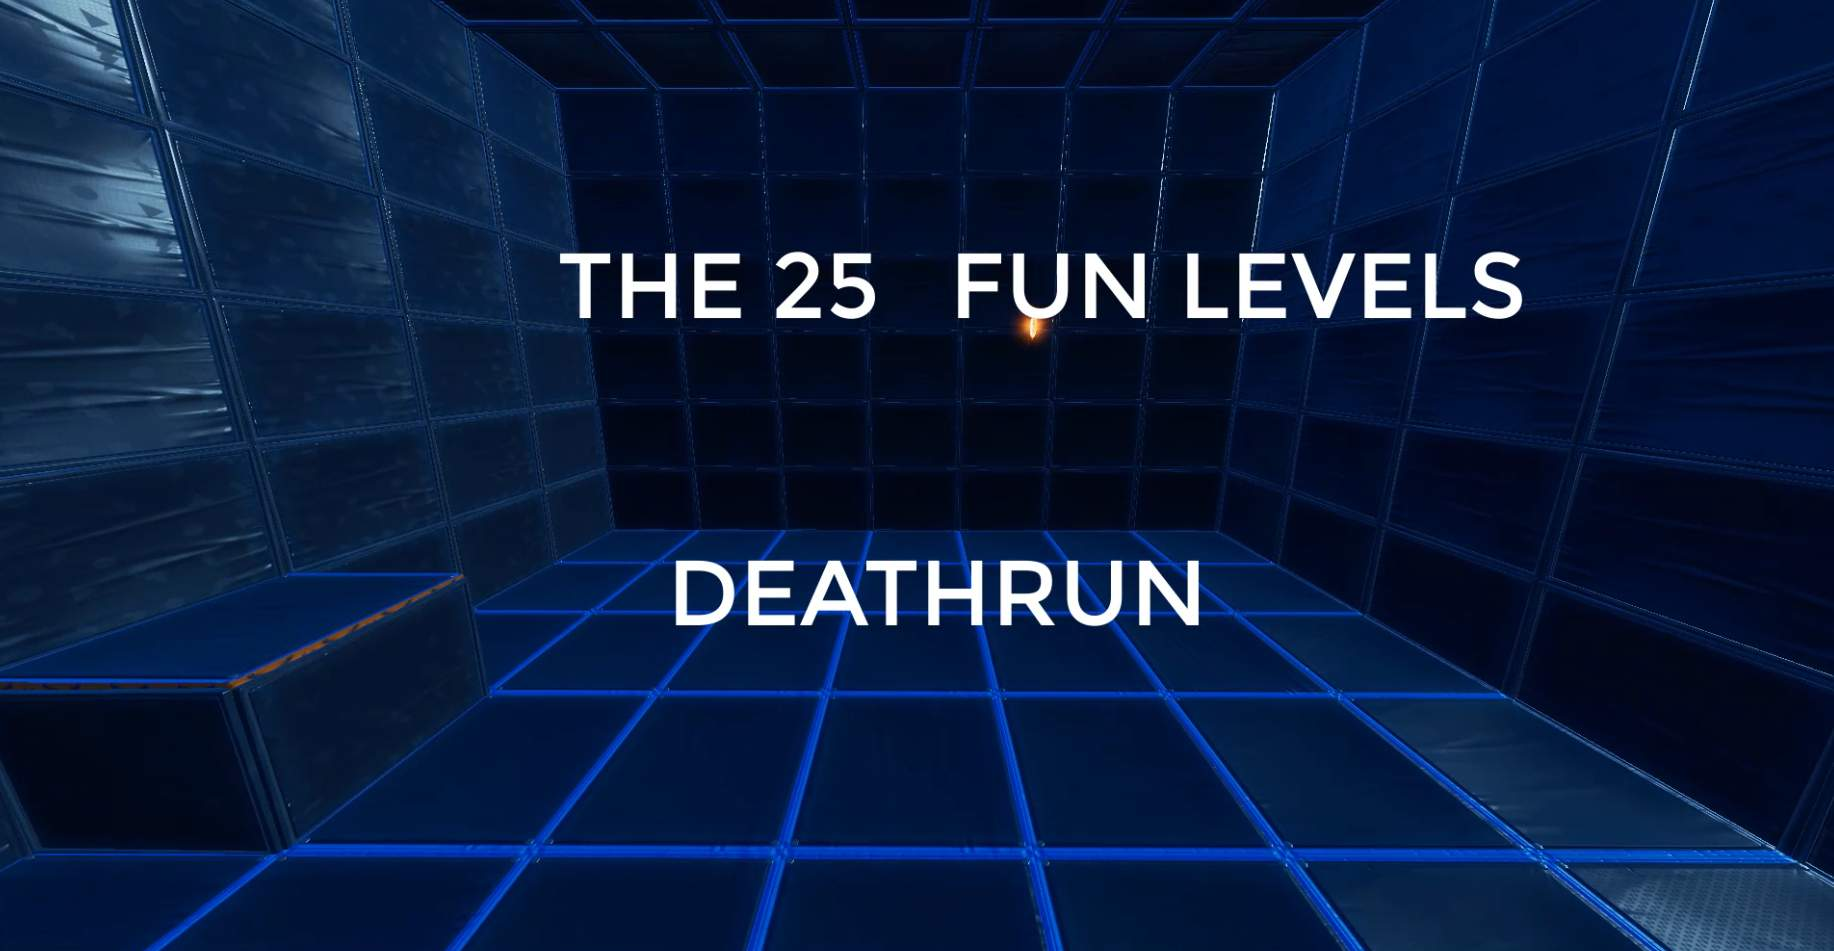 THE 25 FUN LEVELS | DEATHRUN